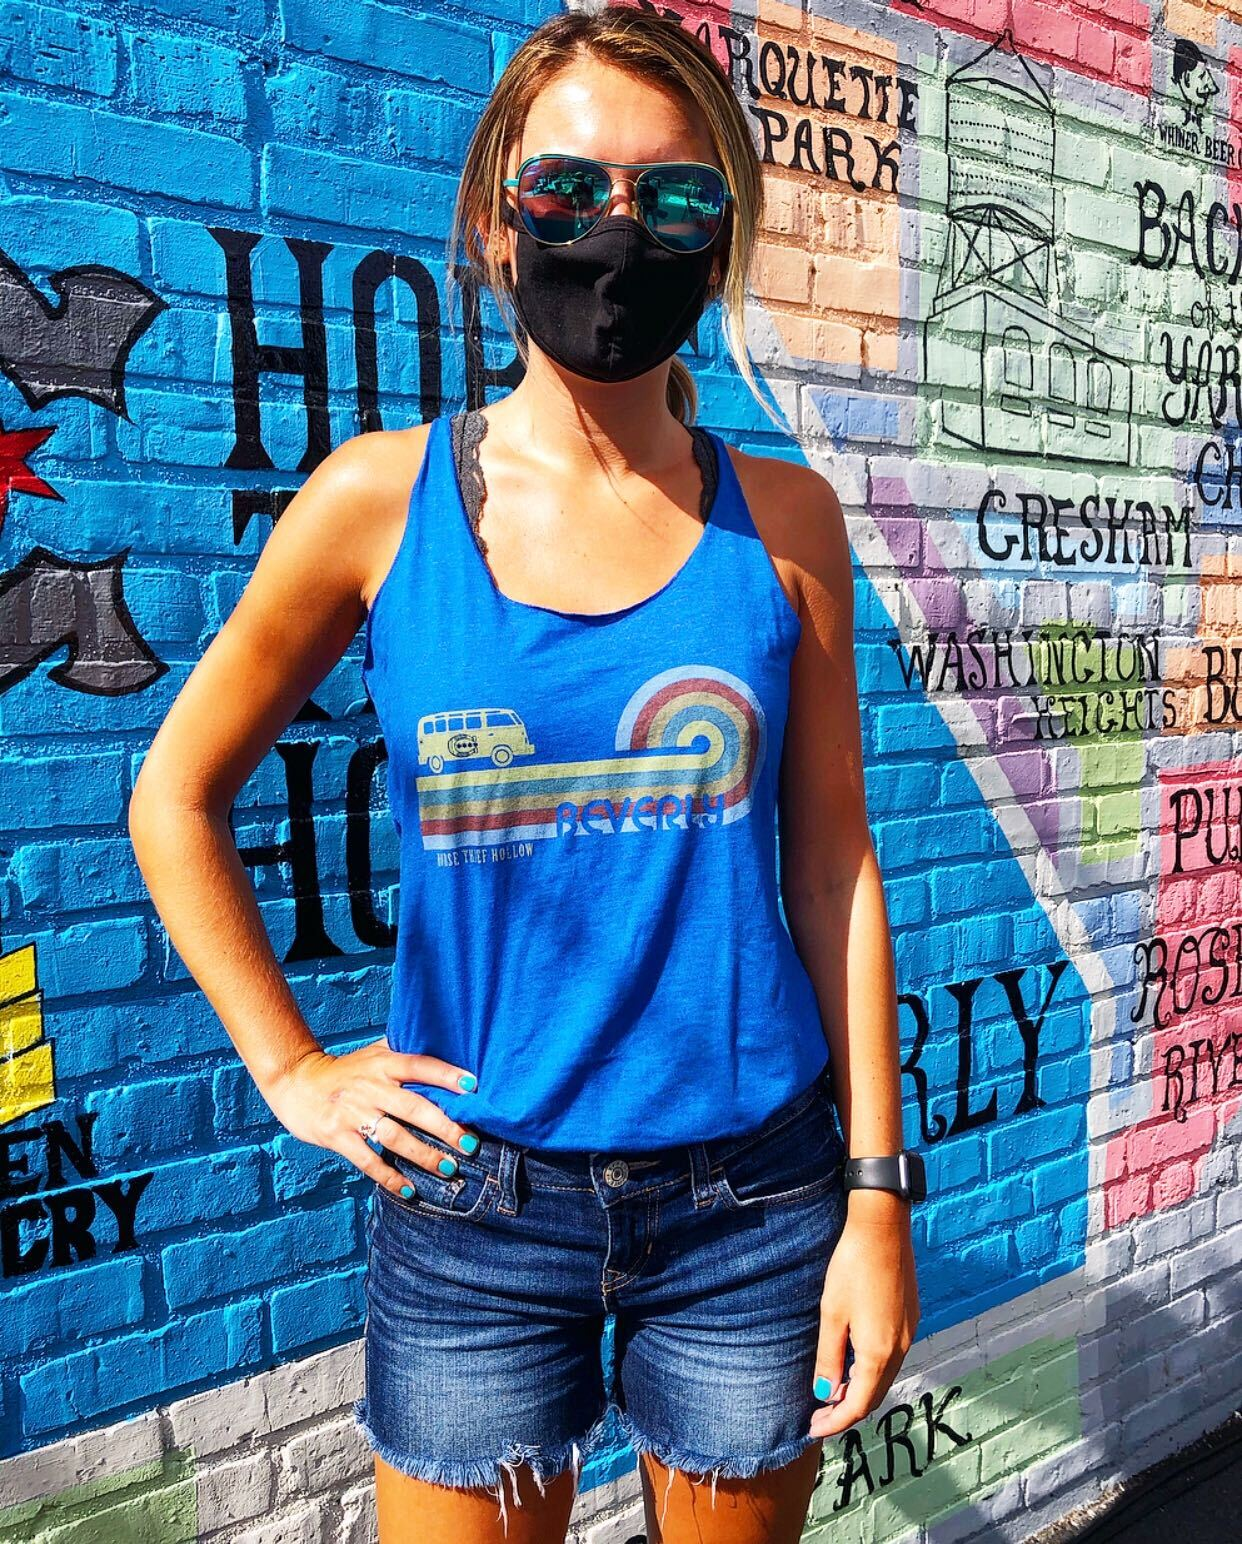 Young lady wearing face mask stands in front of HTH mural outside and models new blue HTH tank top with rainbow and a bus on it